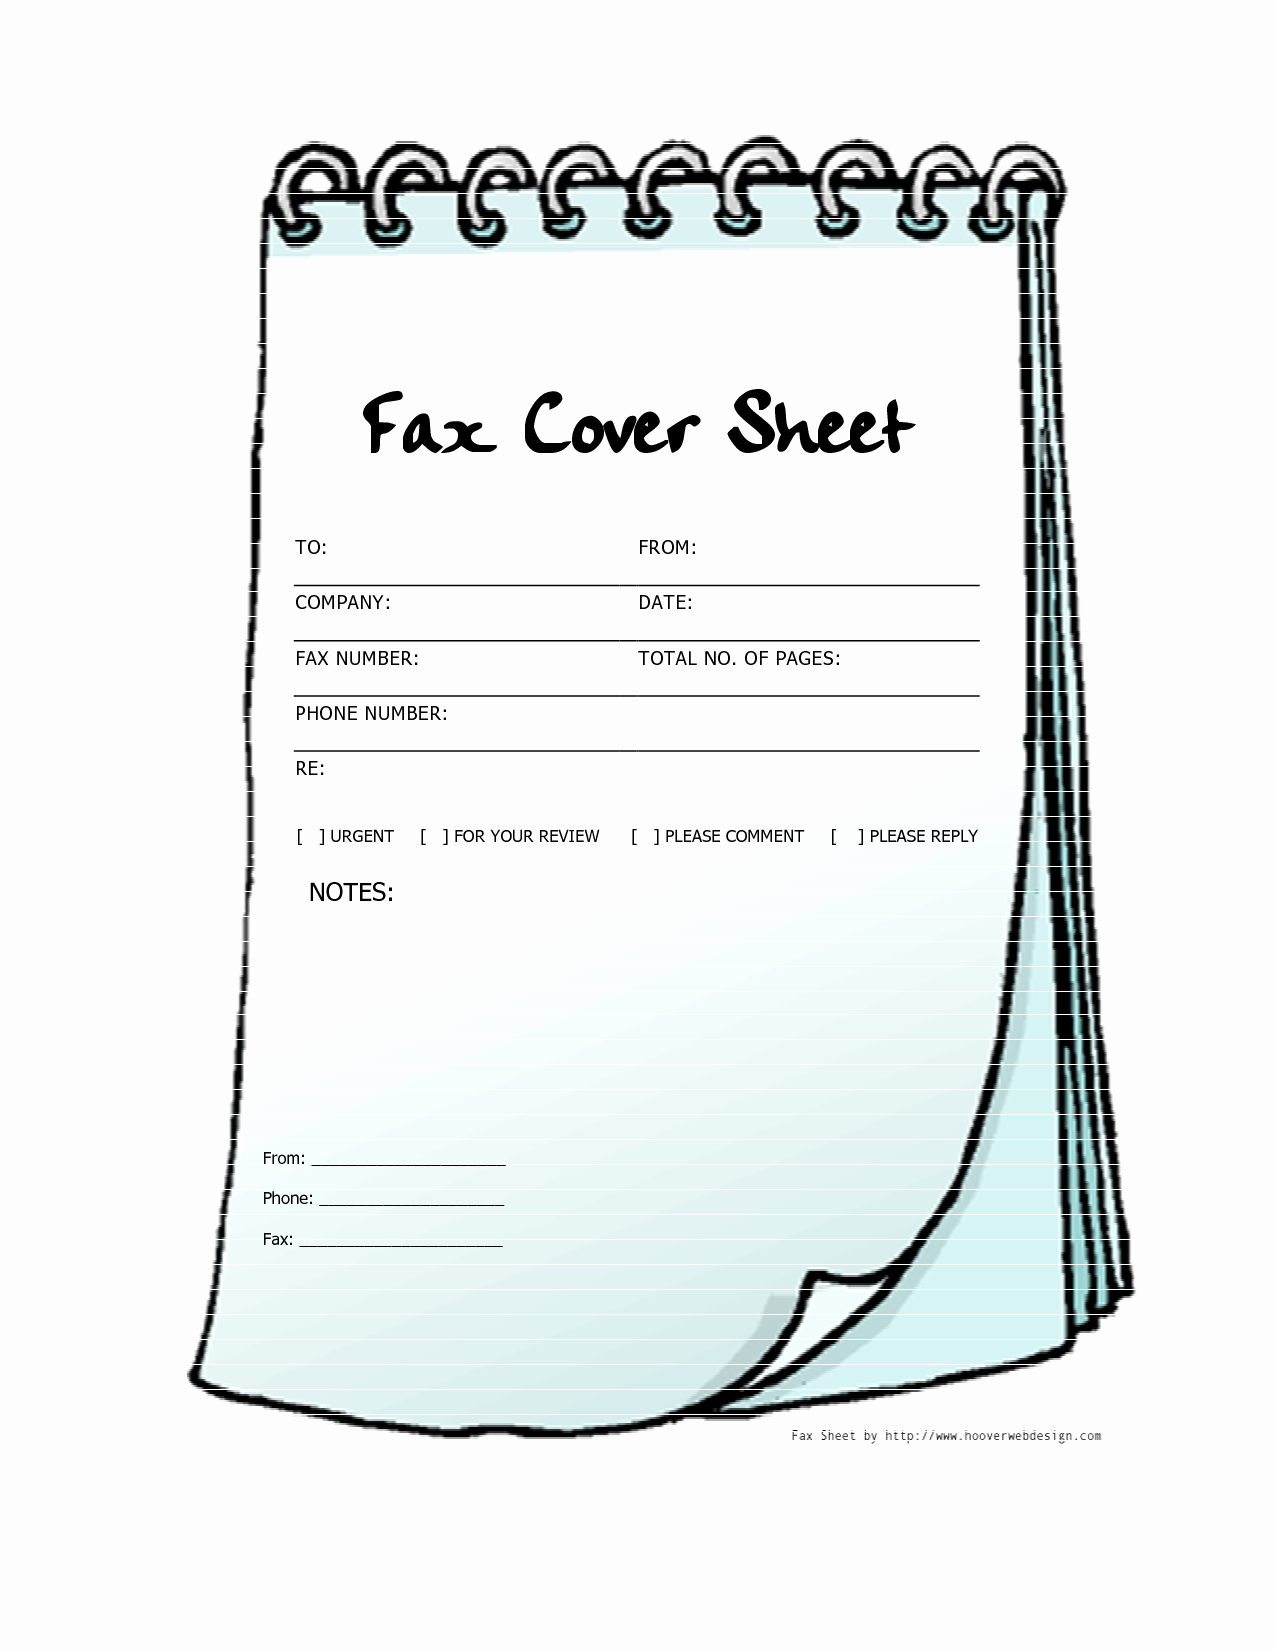 Printable Free Fax Cover Sheets Luxury Free Printable Fax Cover Sheets